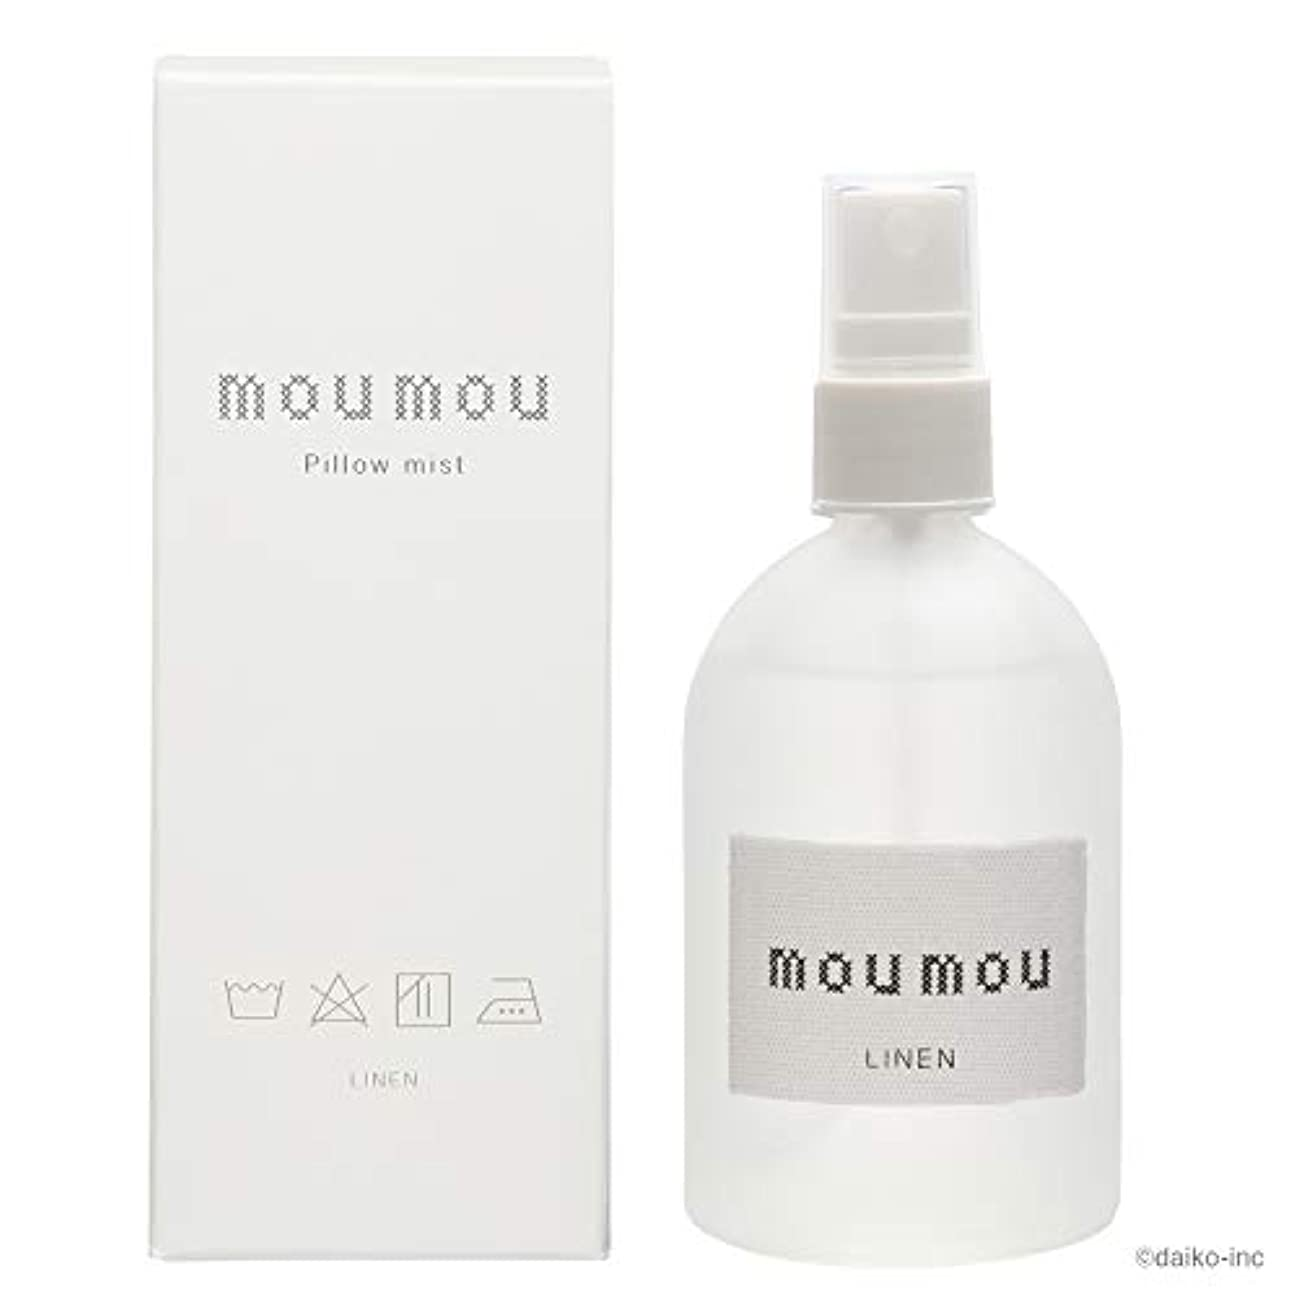 moumou Pillow mist ムームーピローミスト リネン